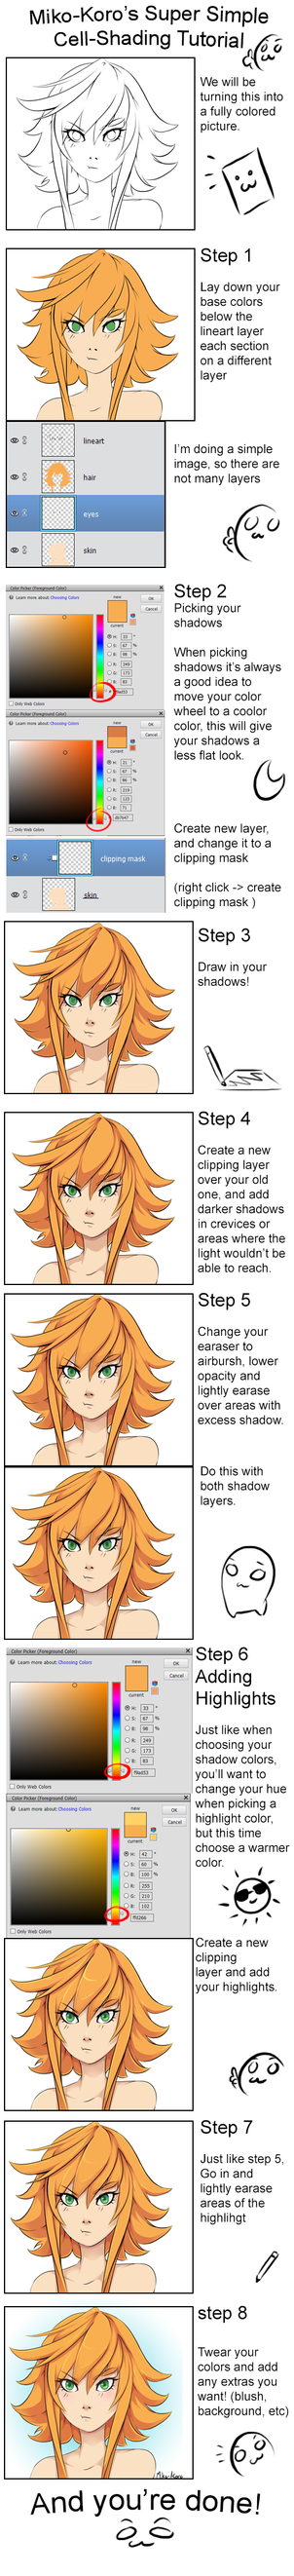 Super Simple Cell Shading Tutorial by Miko-Koro